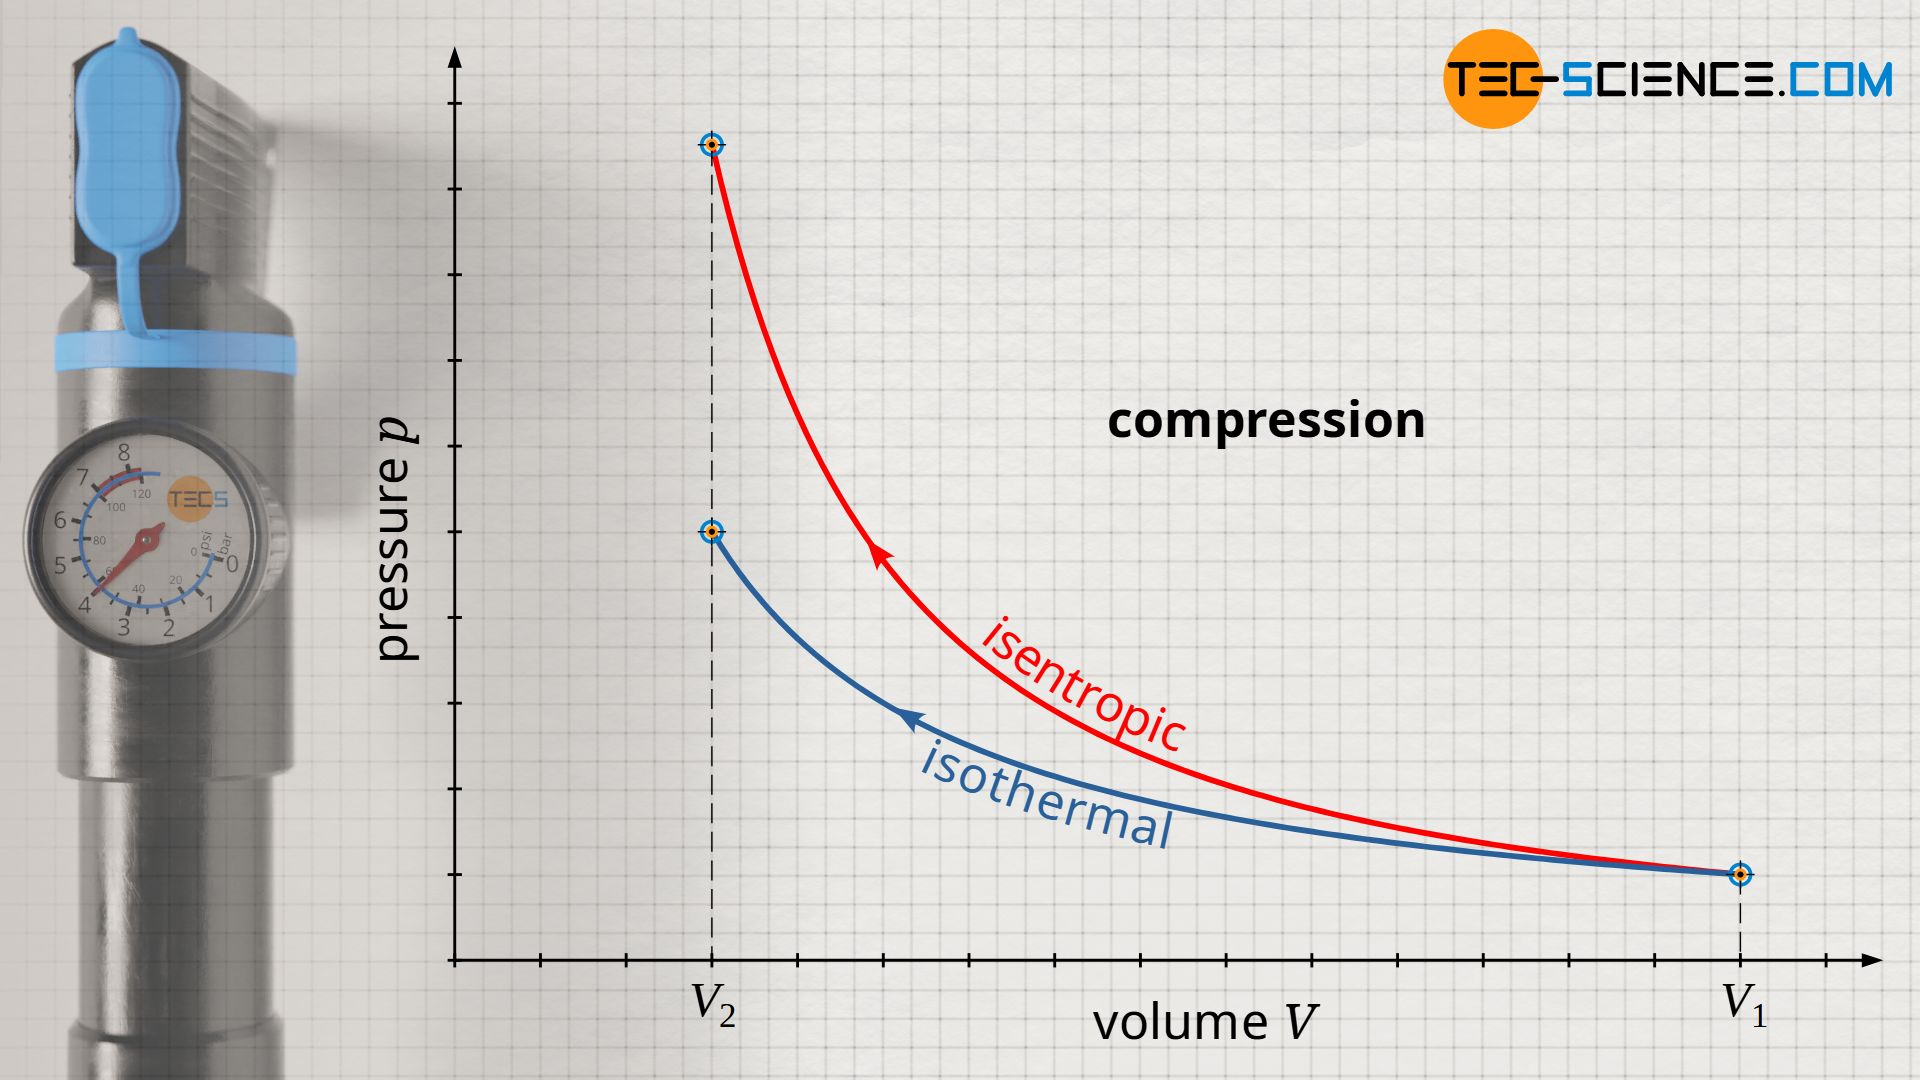 Comparison of an isothermal and an isentropic compression in the volume-pressure diagram